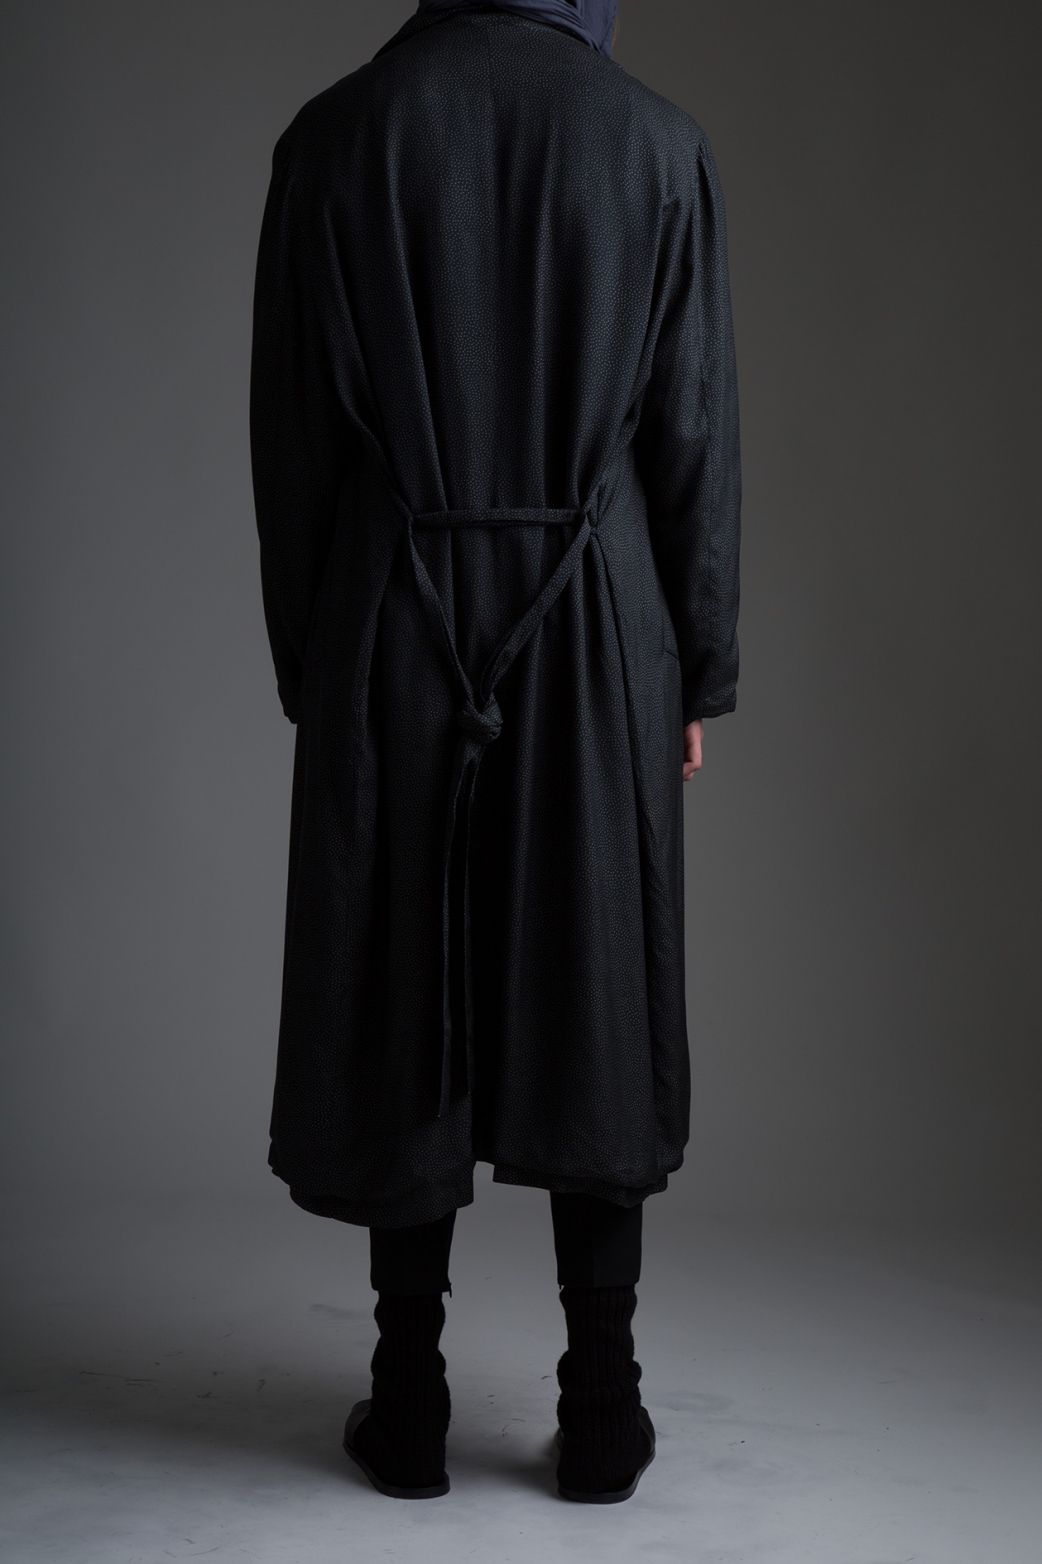 a841a391411 Vintage Men's Silk Trench Coat and Yves Saint Laurent Hooded Scarf, Marni  Pants. Designer Clothing Dark Minimal Street Style Fashion